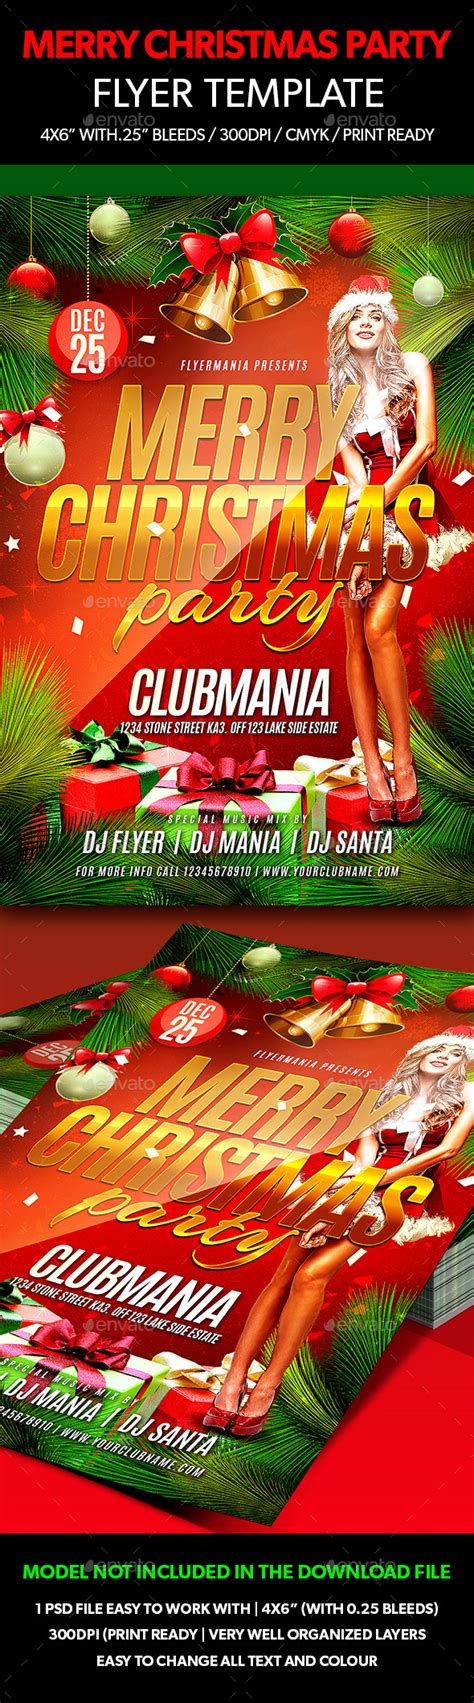 Merry Christmas Party Flyer Template By Flyermania Graphicriver Merry Flyer Template Free